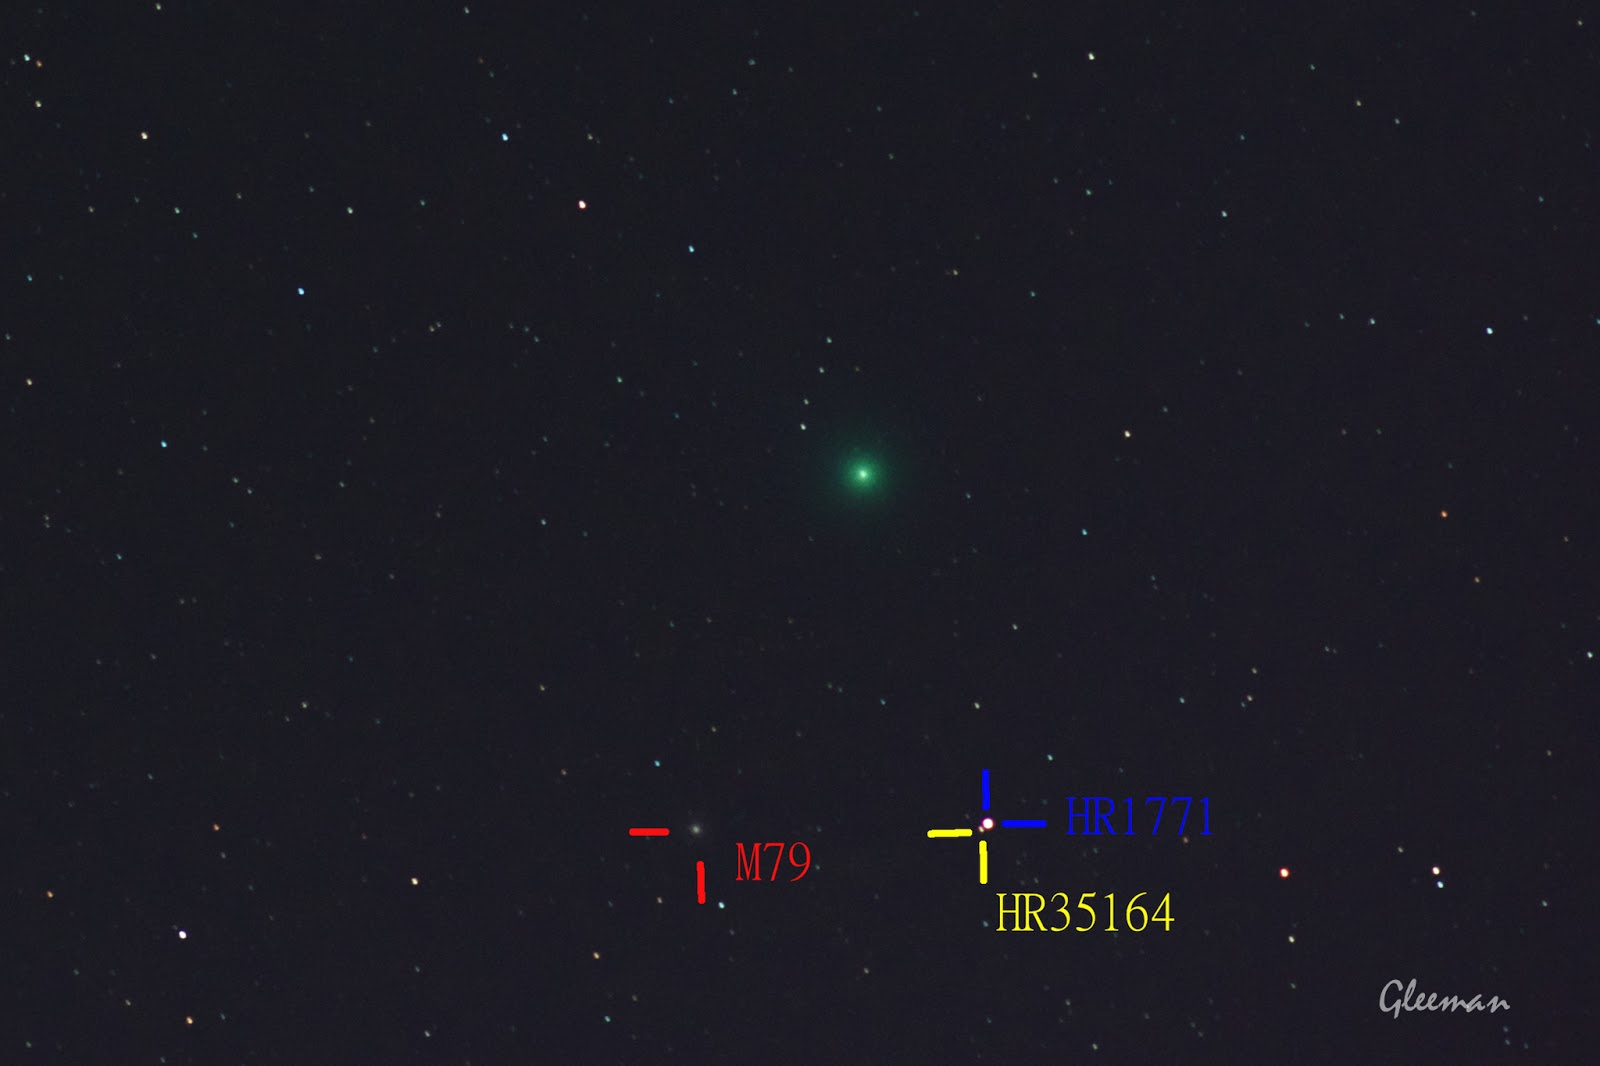 Comet Lovejoy /Pentax K5, O-GPS1 Astrotracer, LPS-P2 filter, DA*200